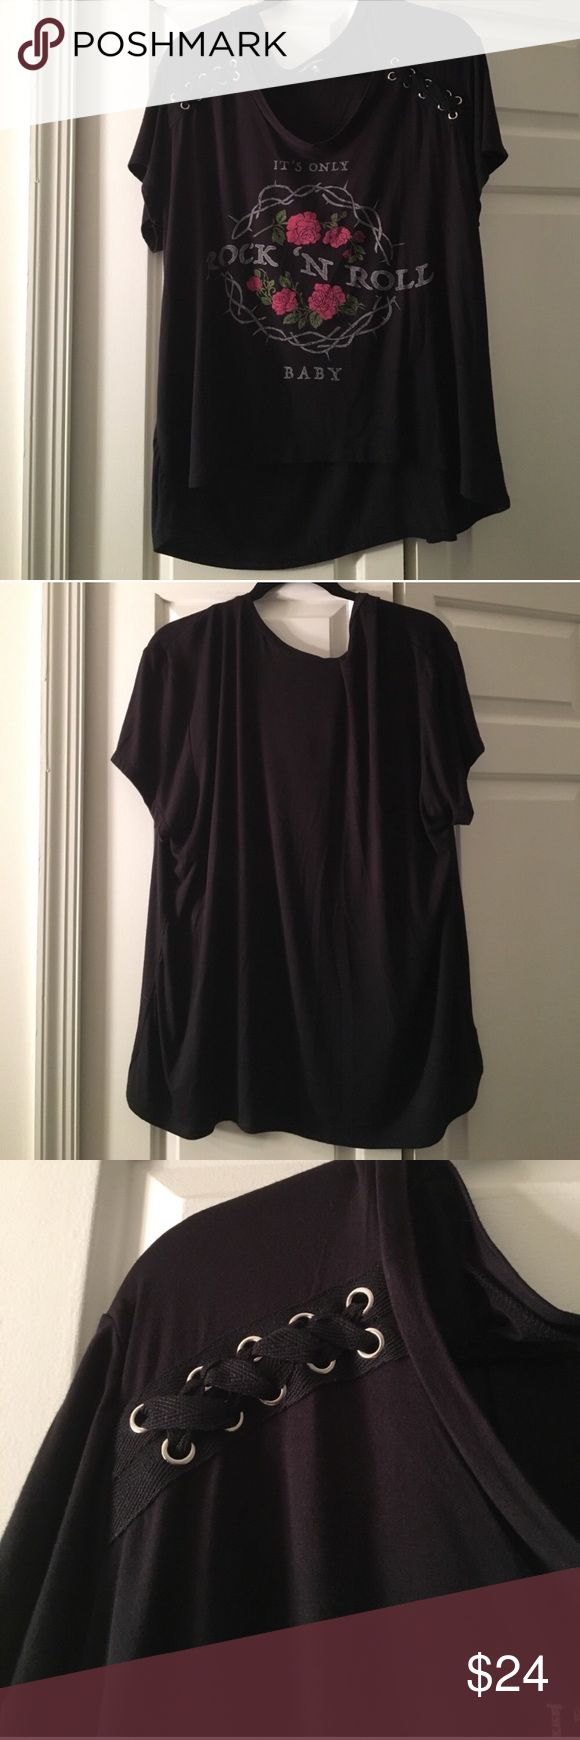 ROCKER CHIC TOP 2X NWOT PLUS SIZE Adorable! Has a tiny puncture where tag was. Very soft!! Distressed look is trendy Tops Tees - Short Sleeve